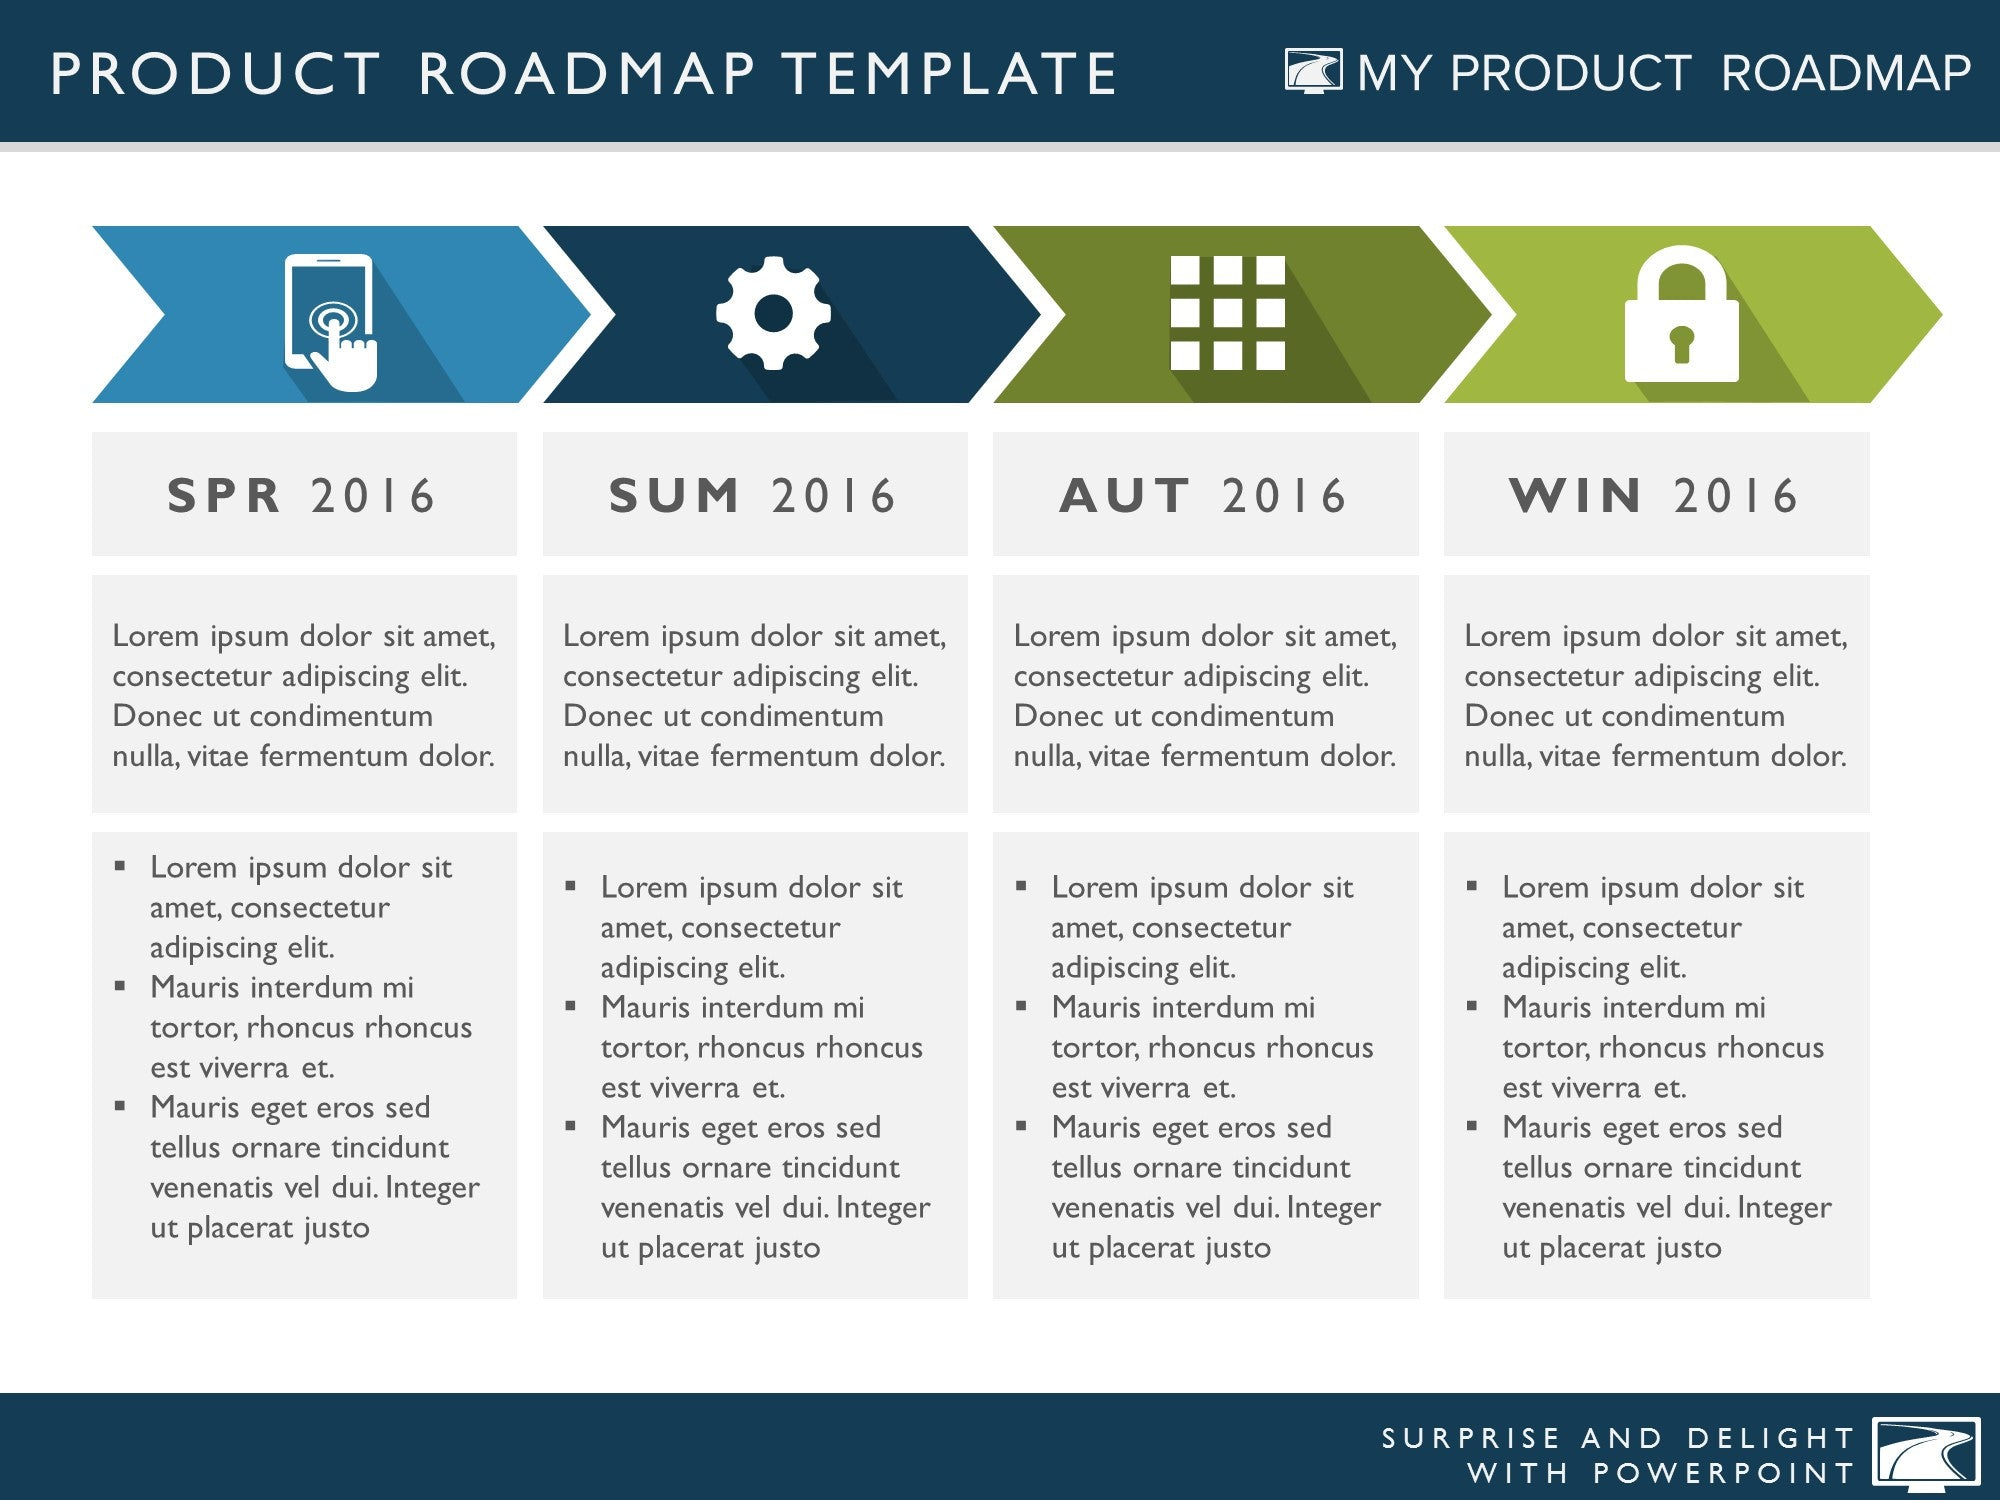 Product roadmap templates for powerpoint product strategy portfolio management development cycle project roadmap agile planning simple plan template diagram powerpoint technology alramifo Gallery